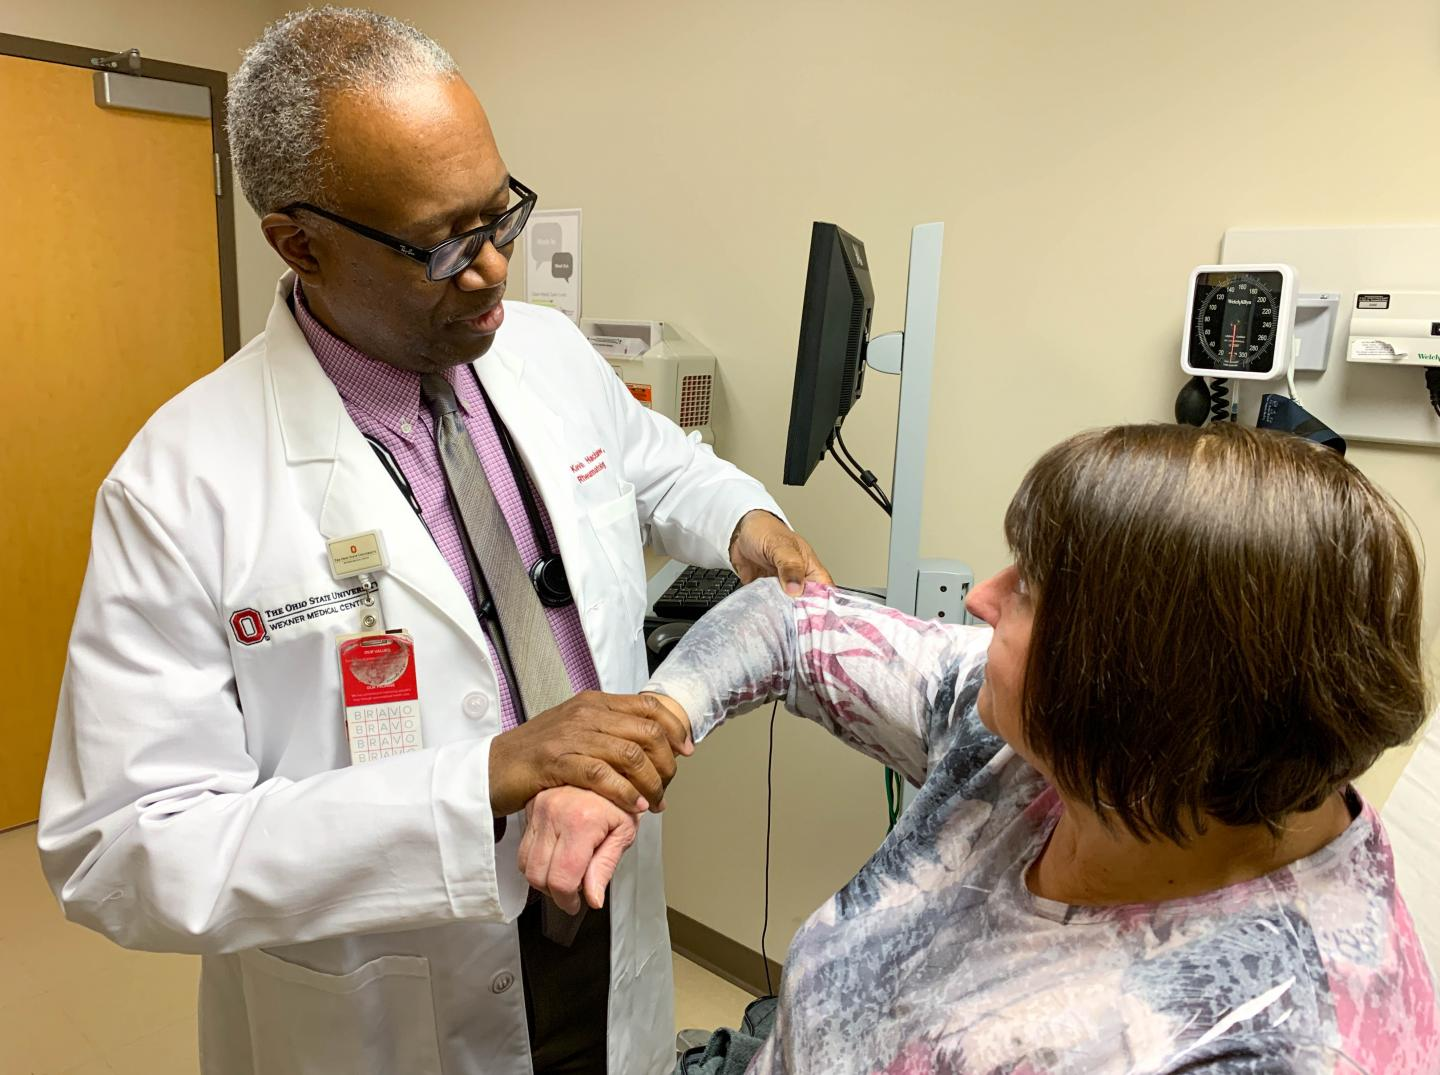 Dr. Kevin Hackshaw examines fibromyalgia patient Barb Hartong at The Ohio State University Wexner Medical Center. A new blood test may one day guide personalized treatment plans to relieve fibromyalgia pain. / Credit: The Ohio State University Wexner Medical Center